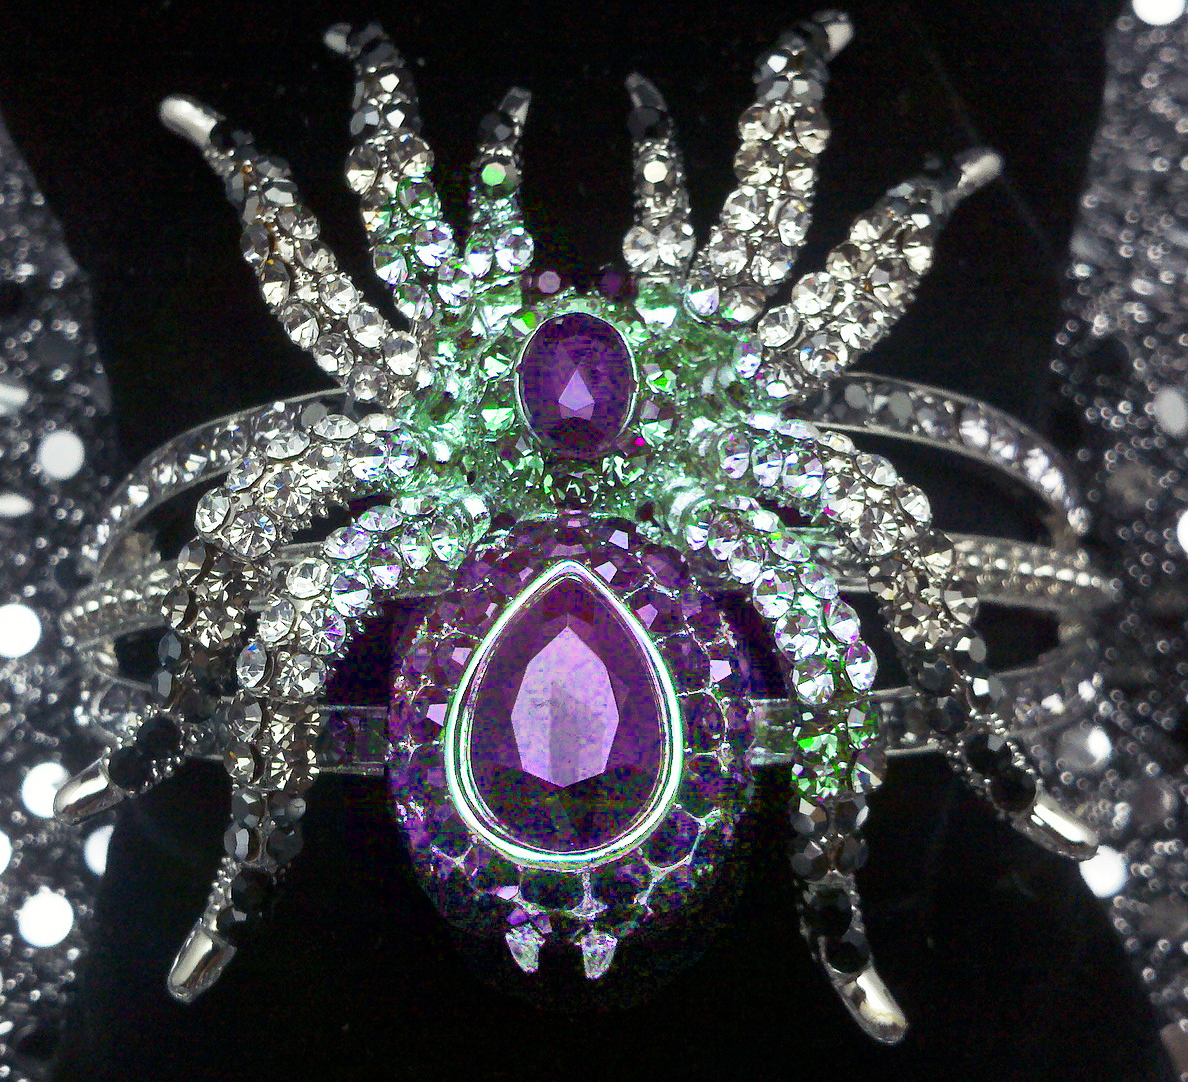 Altered Spider jewelry pin Starbright Pixabay